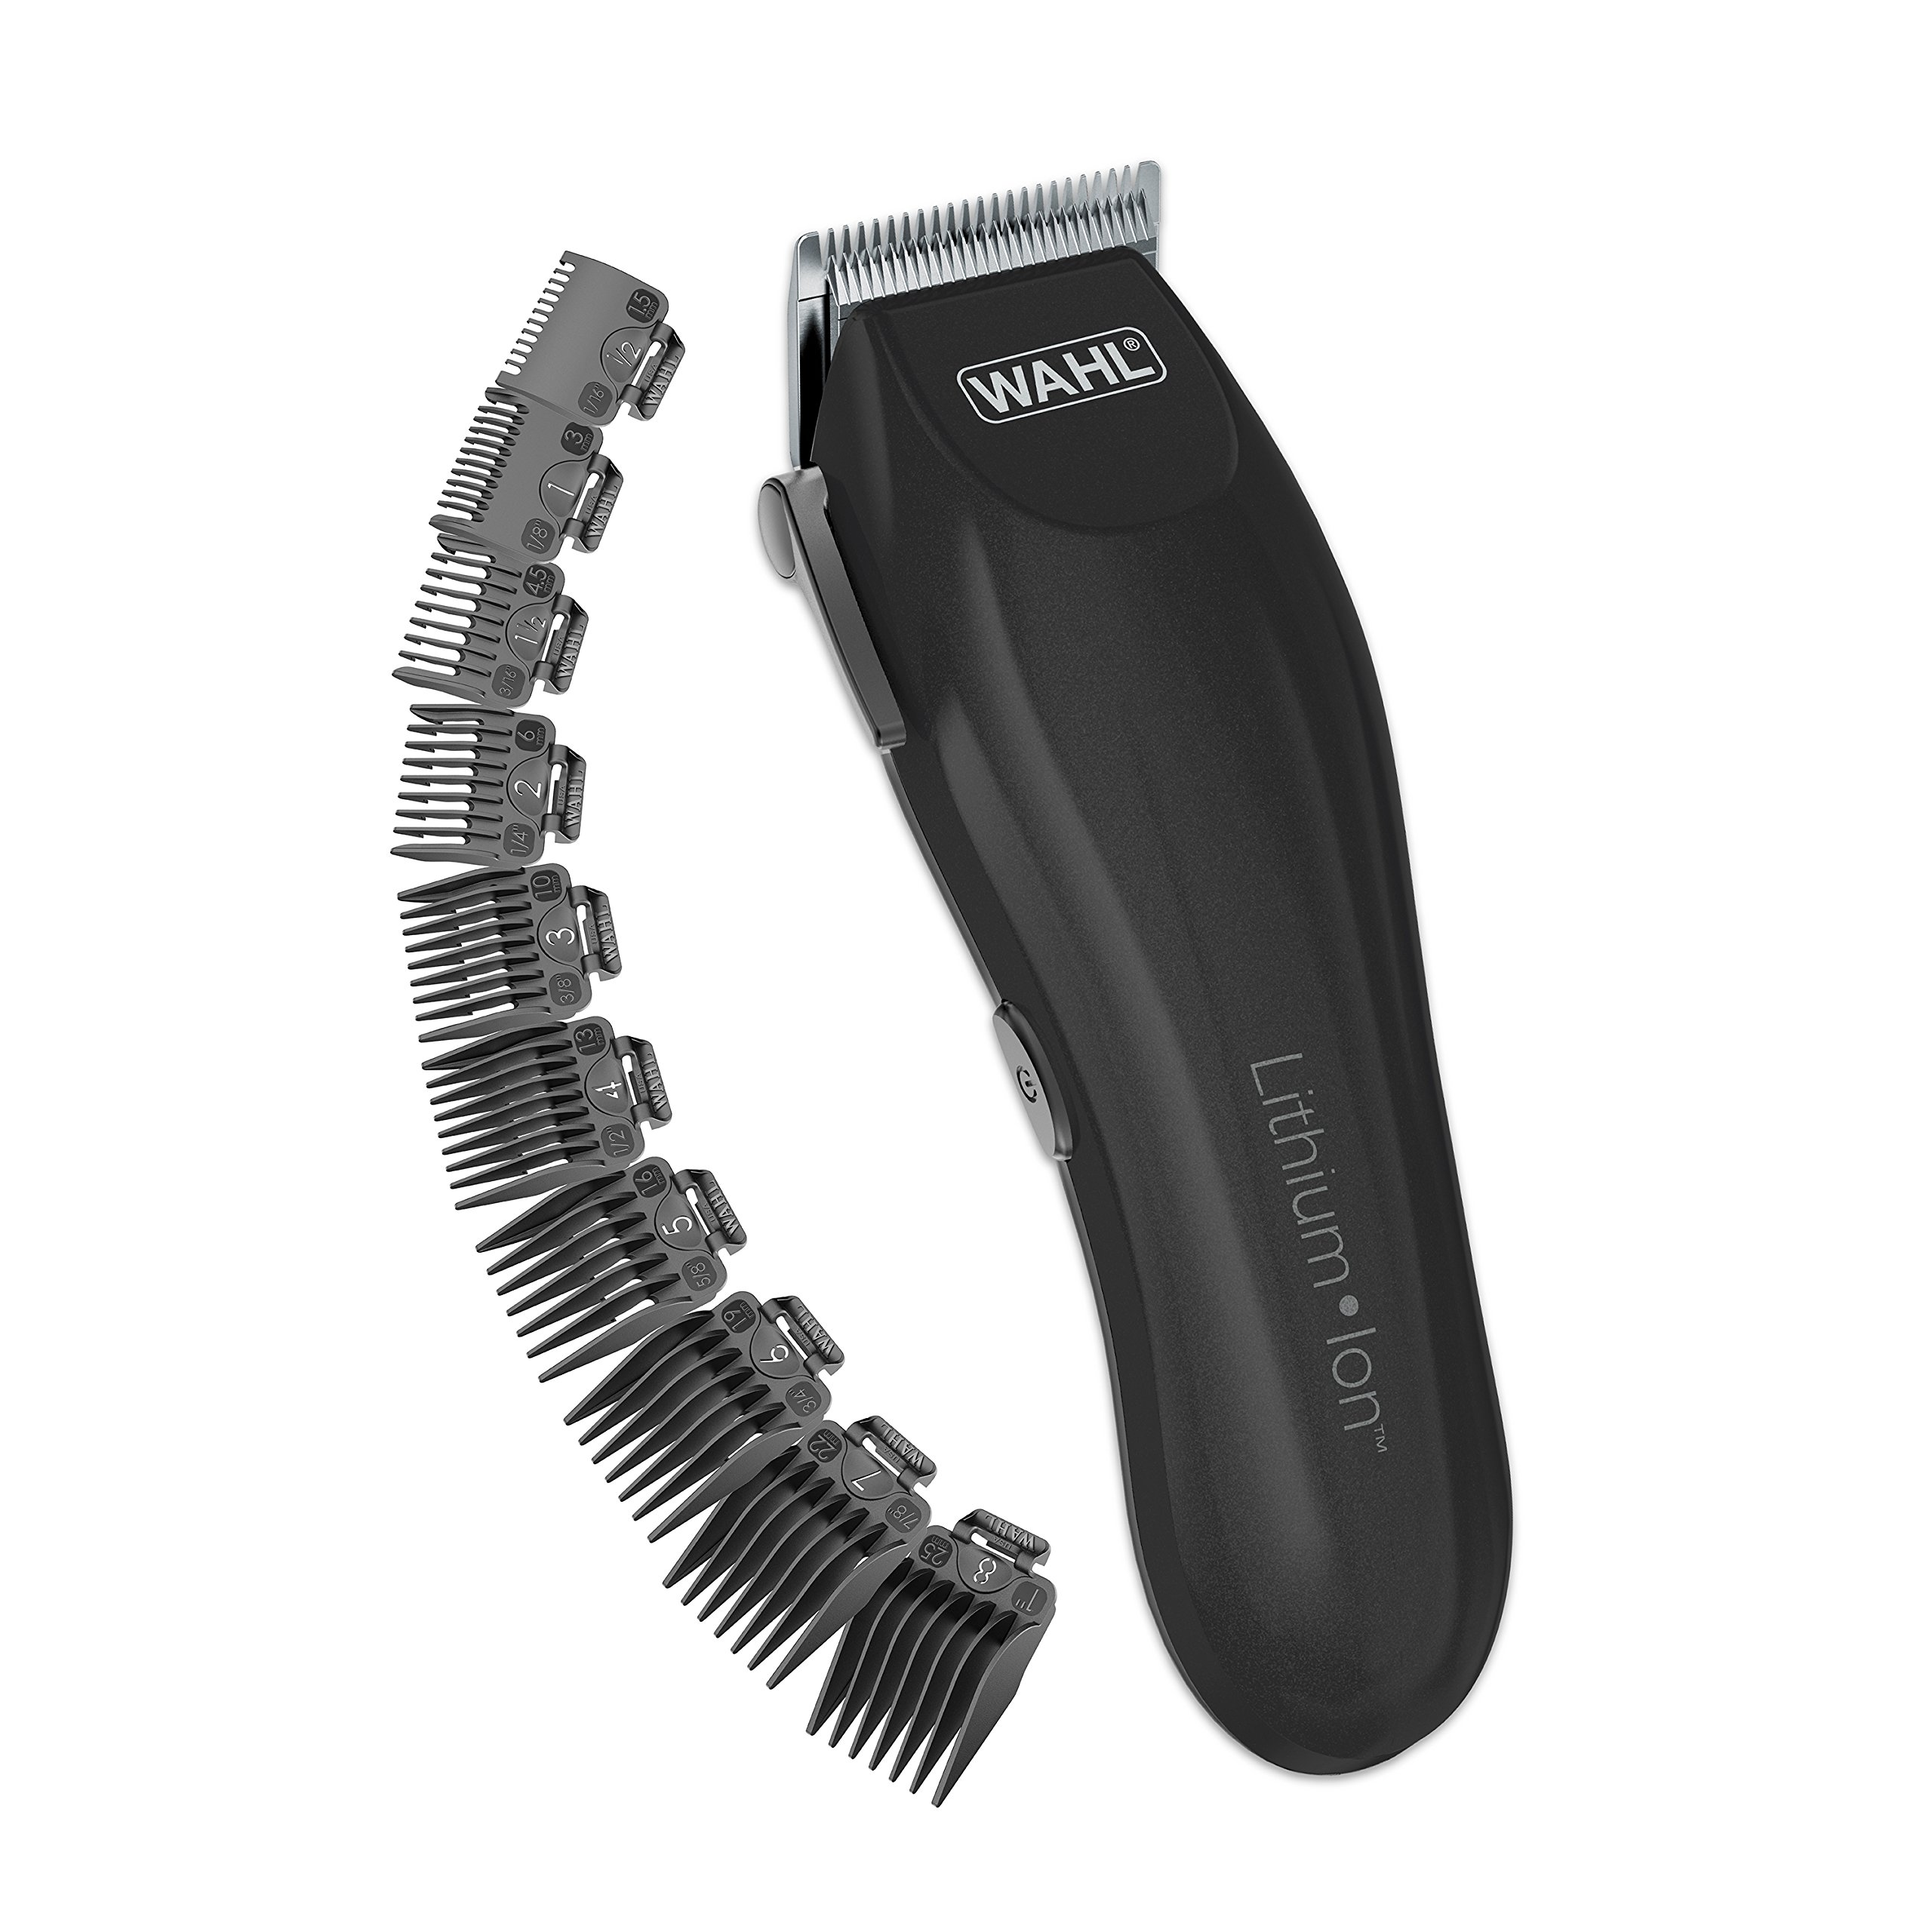 Wahl Clipper Lithium-Ion Cordless Haircutting Kit - Rechargeable Grooming and Trimming Kit with 12 Guide Combs - By The Brand Used By Professionals - Model 79608